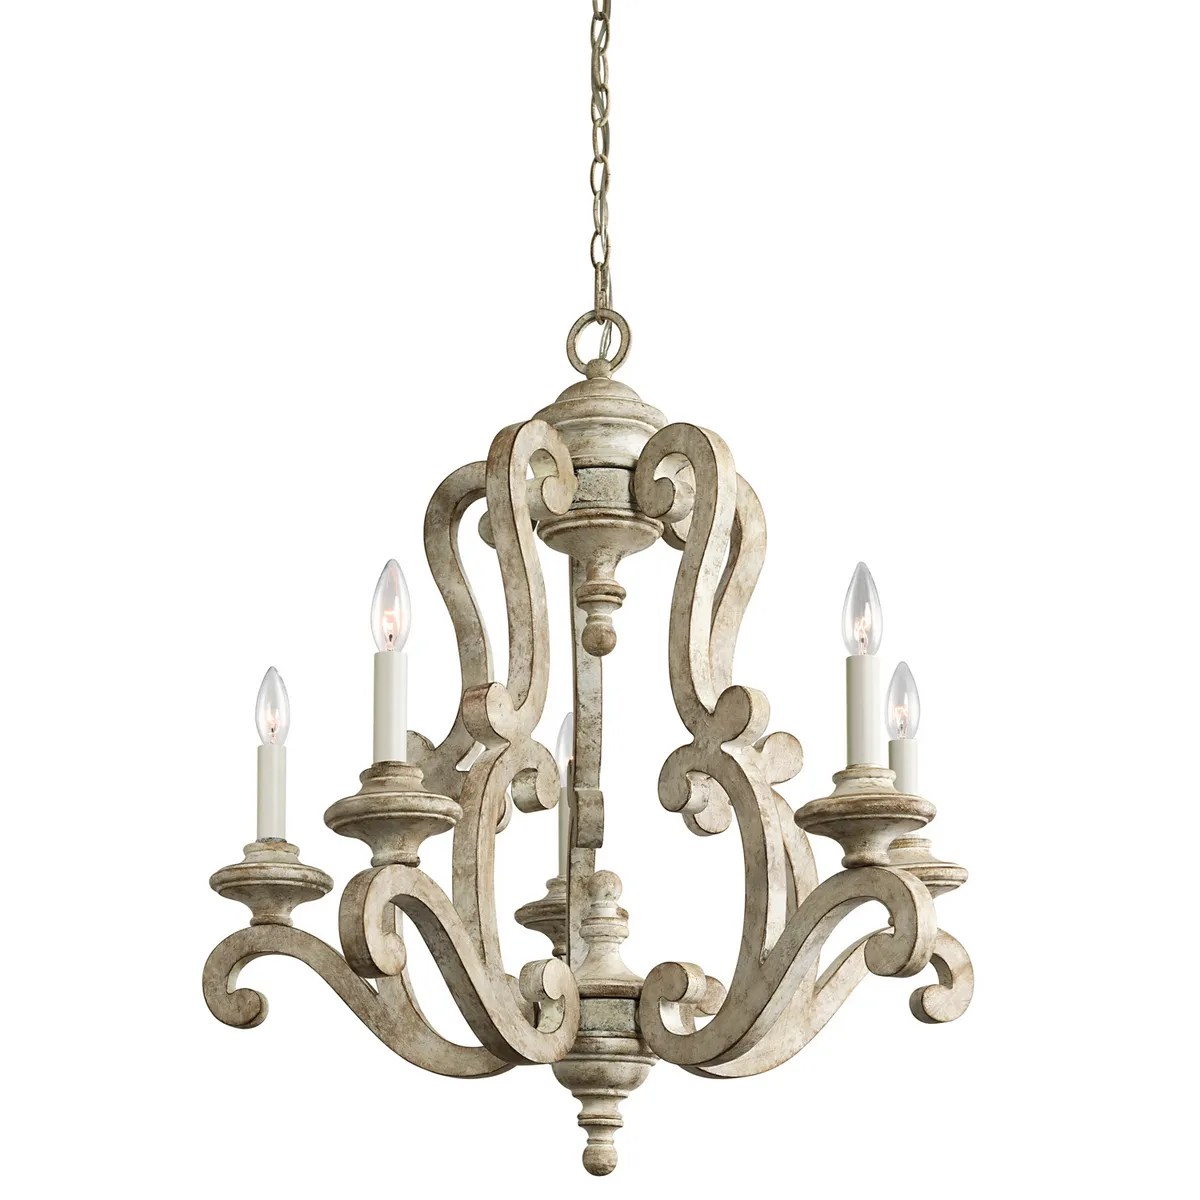 kichler hayman bay french country chandelier in distressed antique white